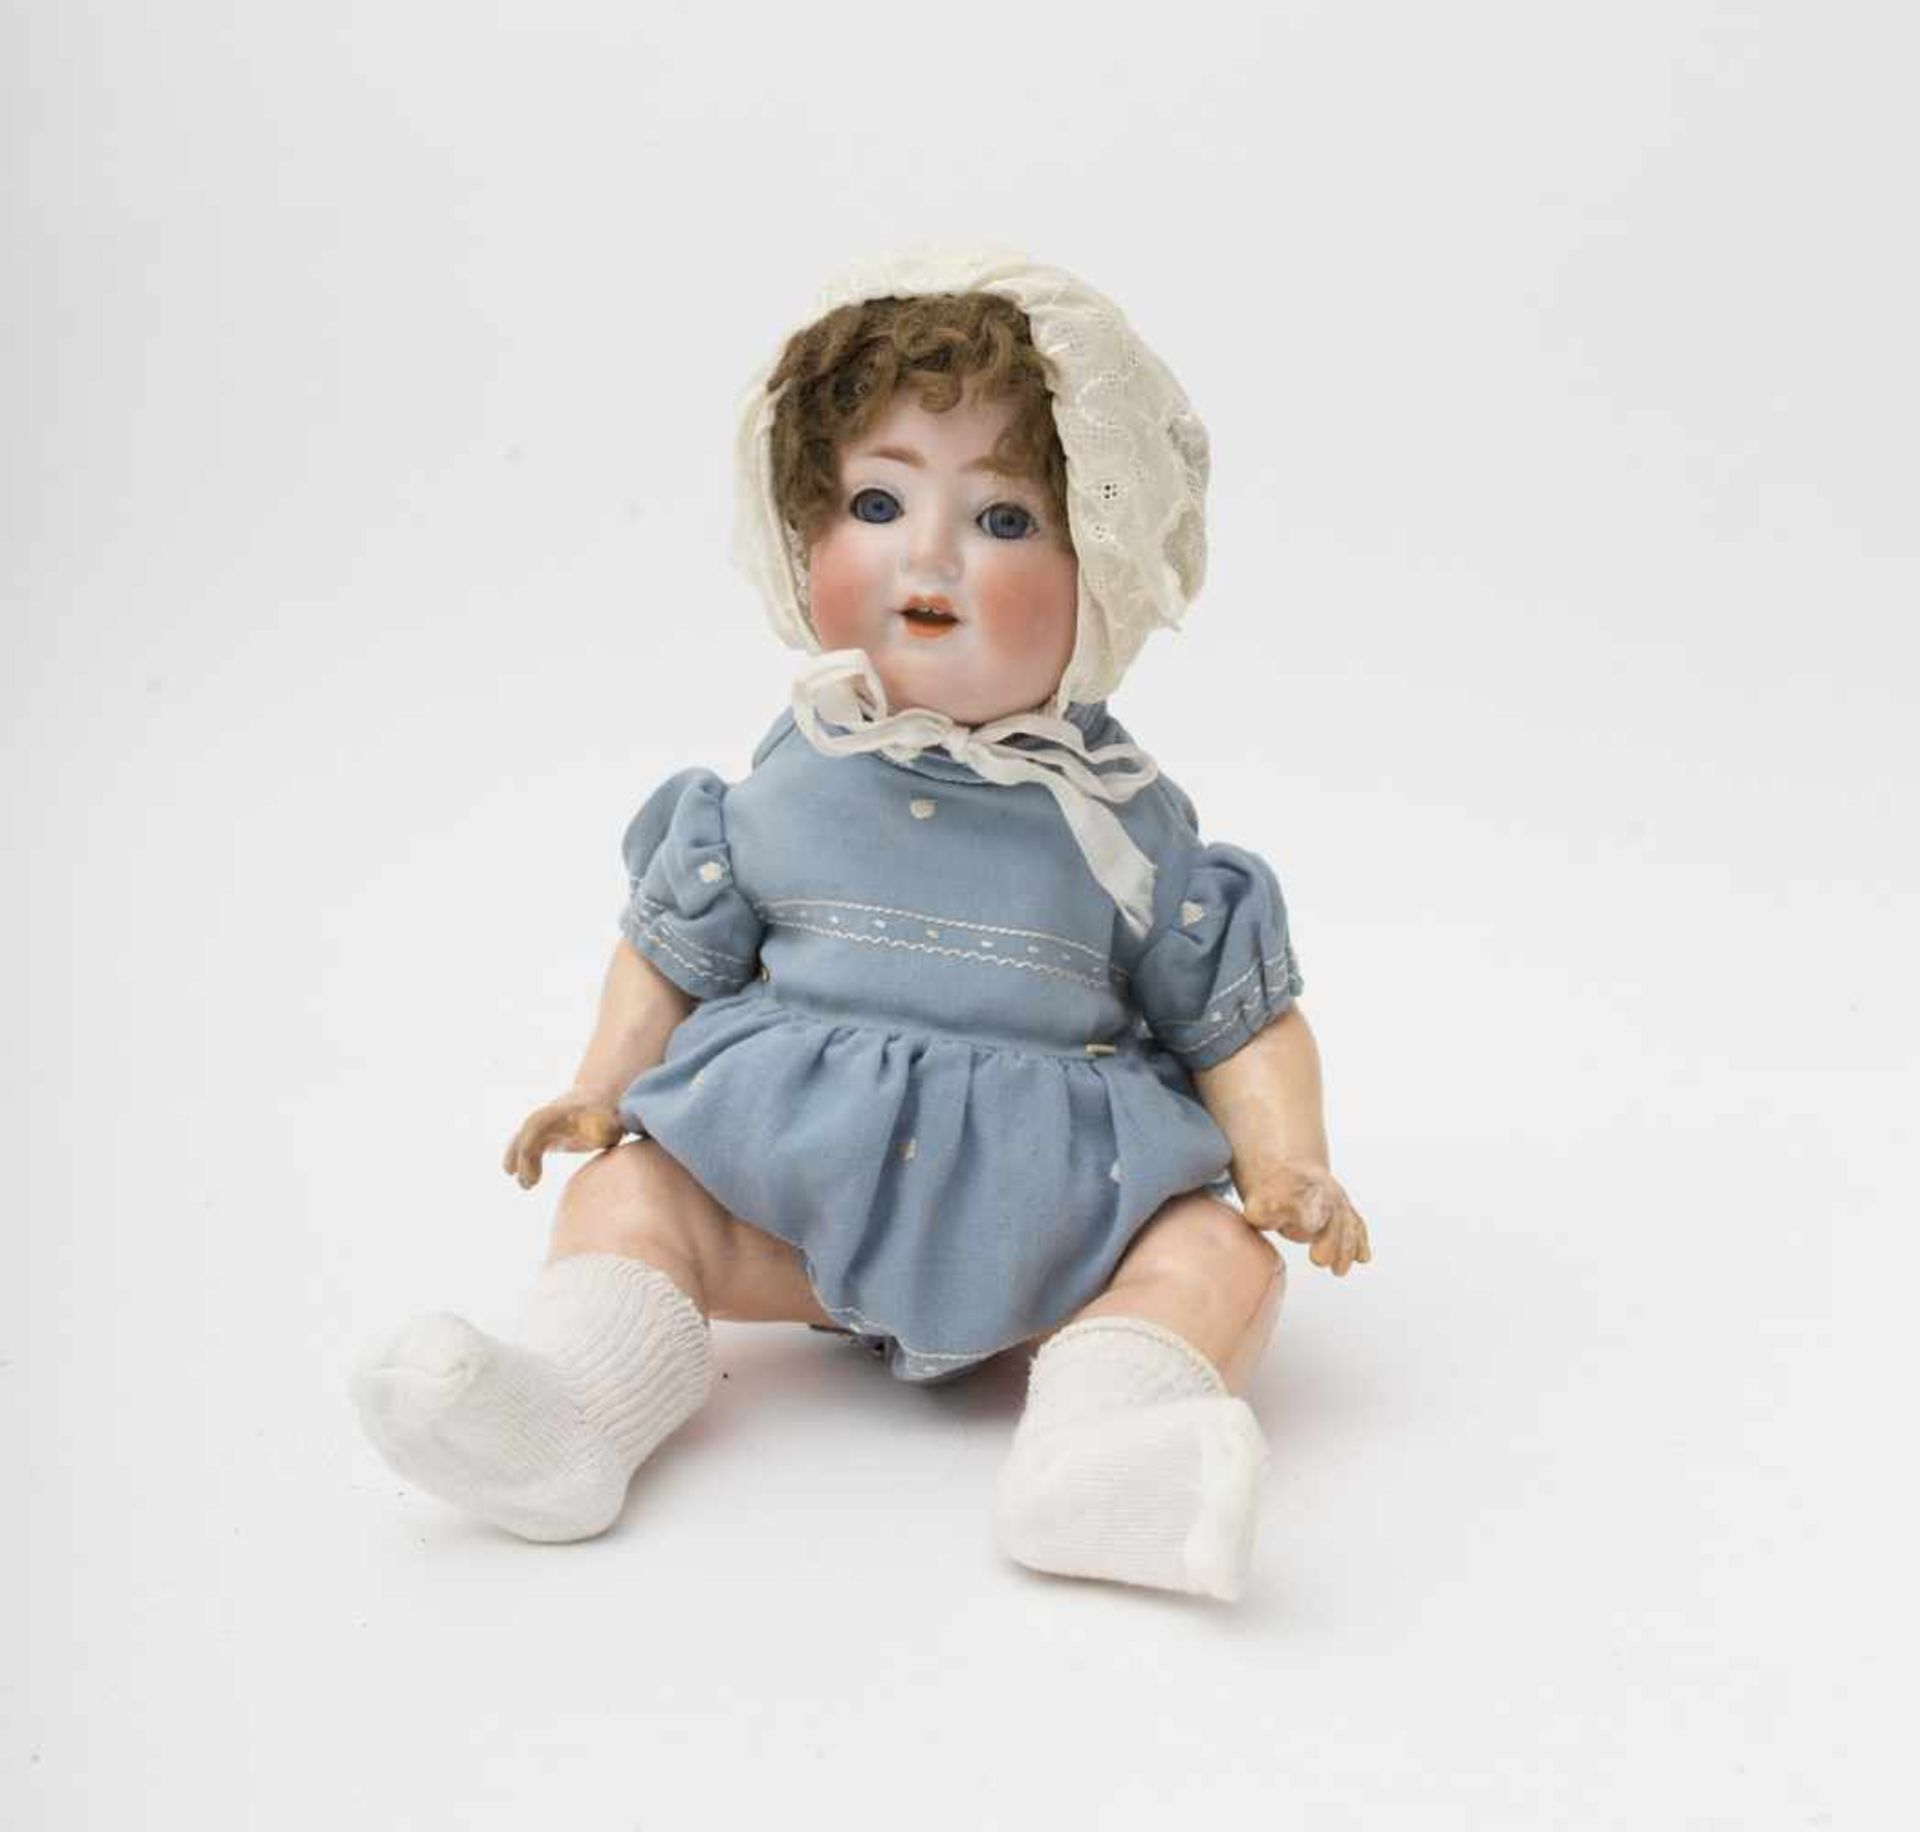 """German character baby doll Made of biscuit, open mouth, branded """"169 T.O"""", blue sleeping eyes,"""